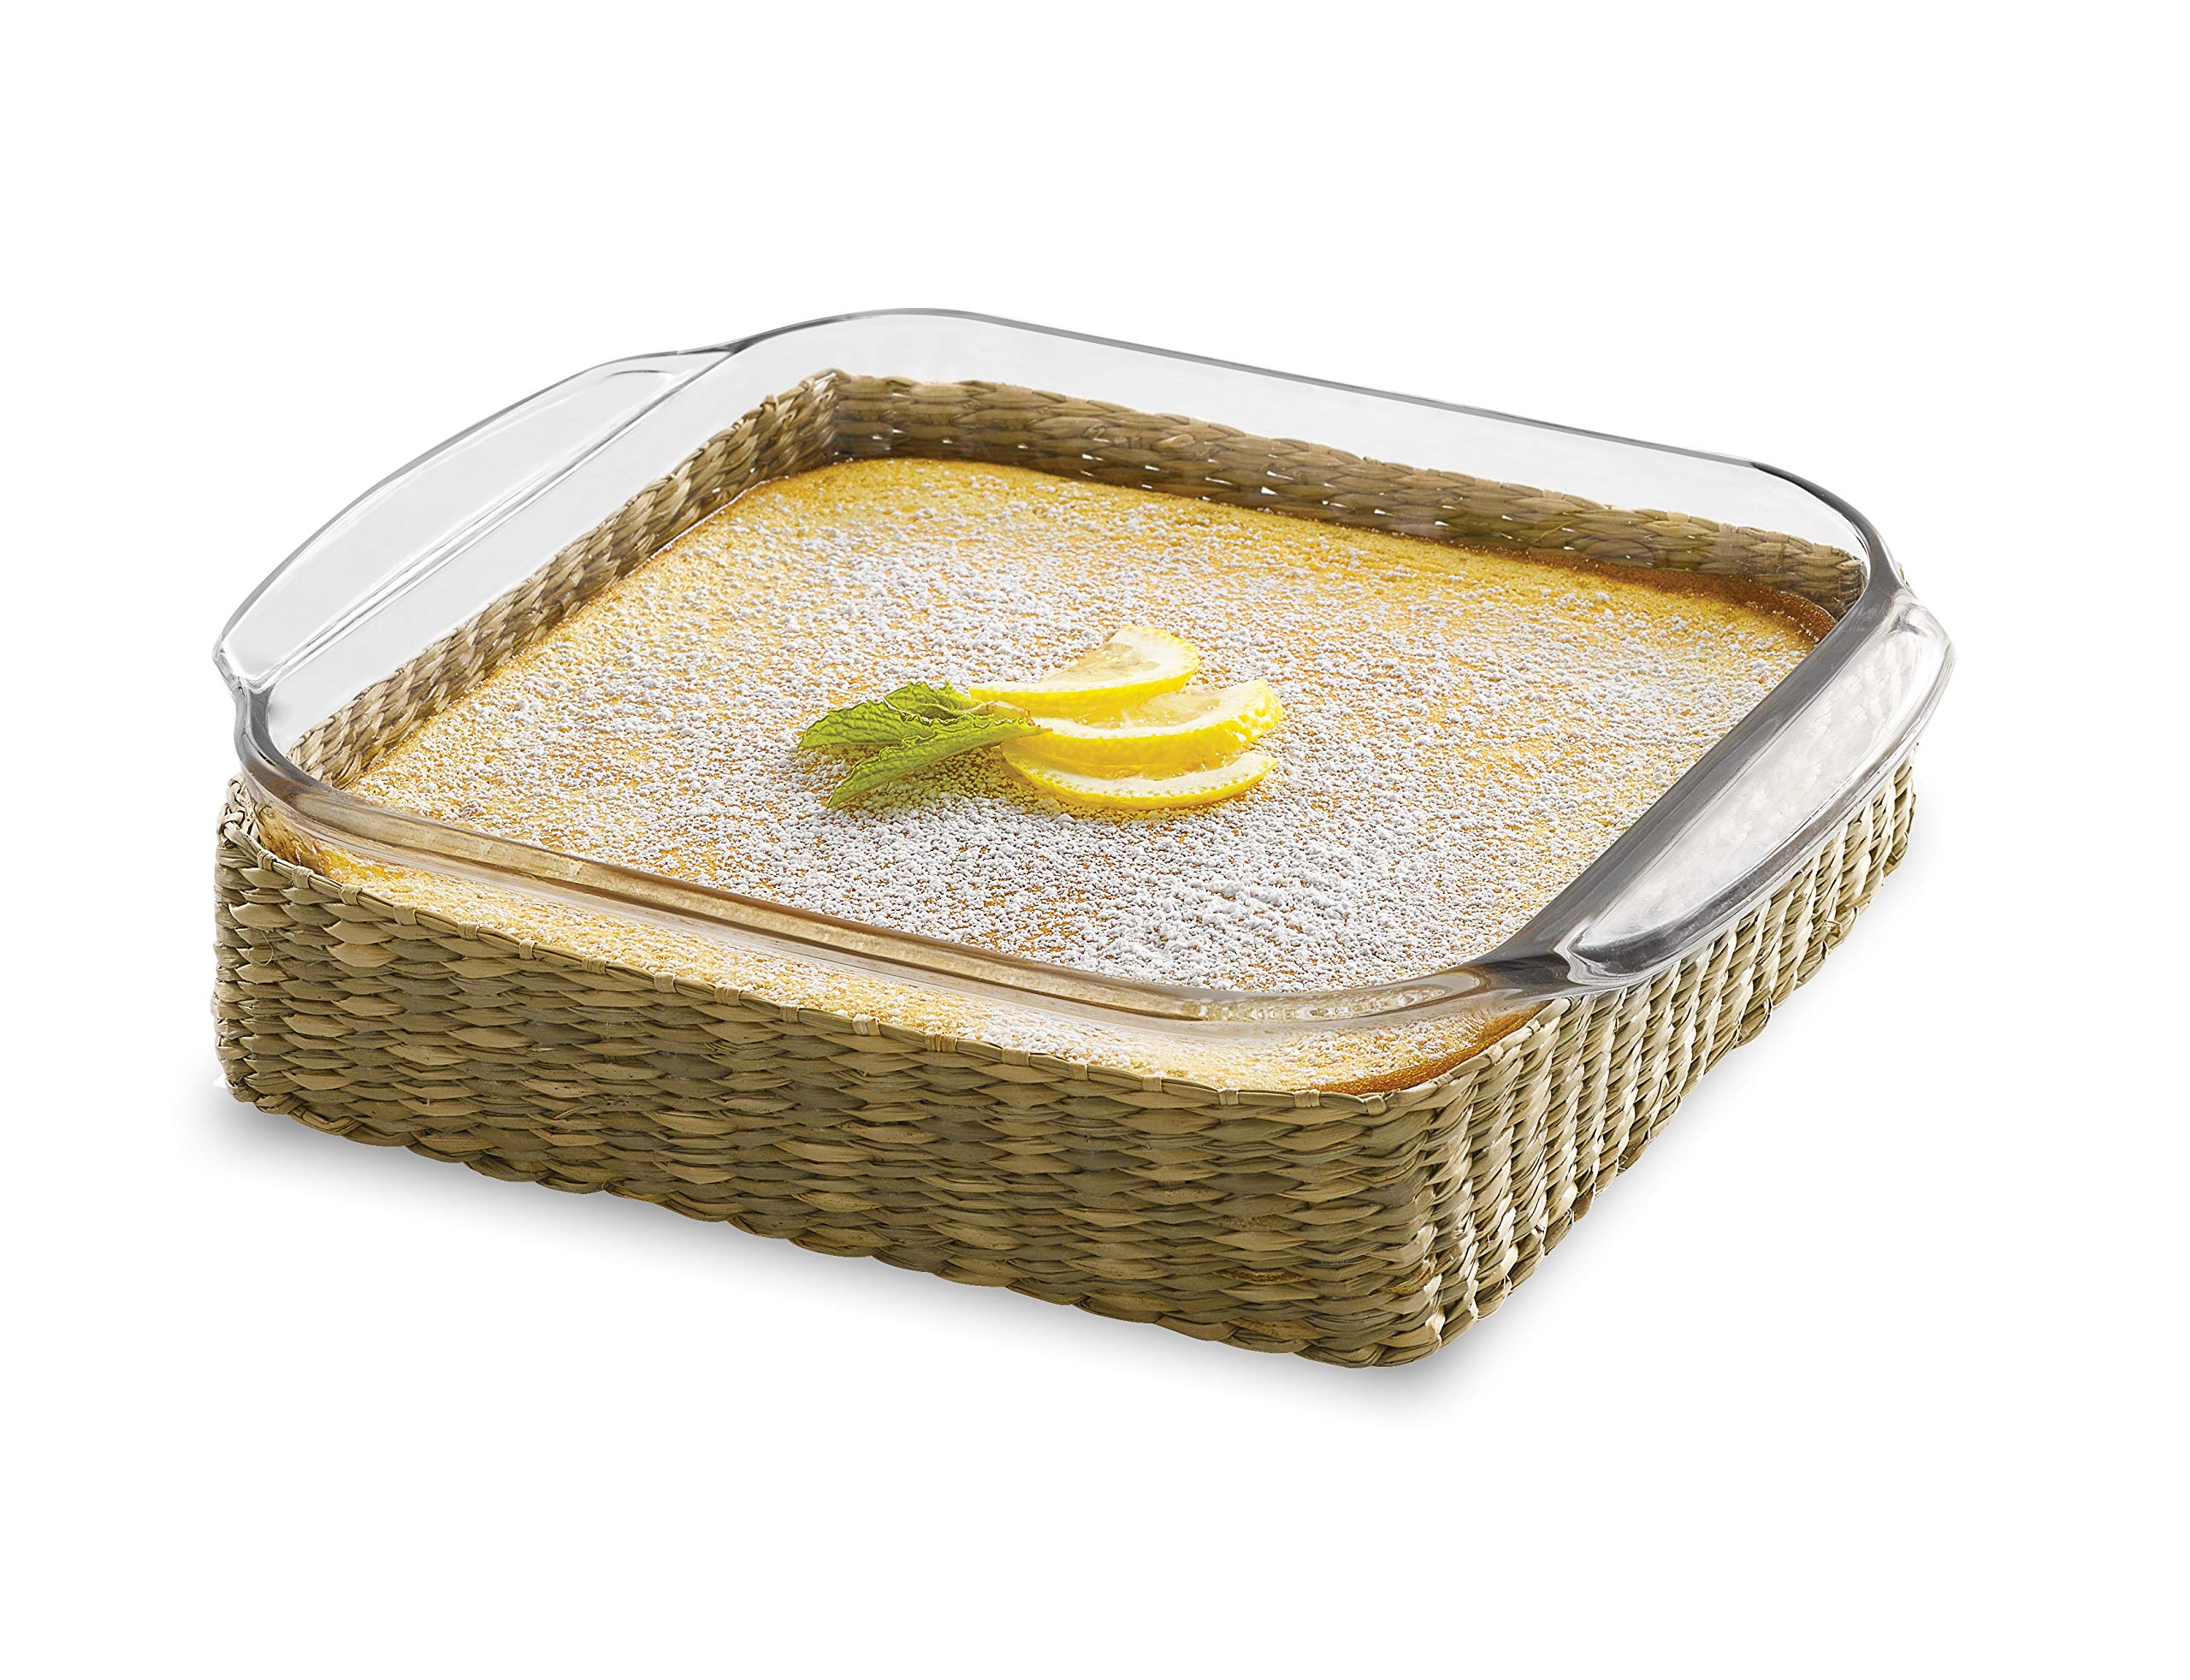 Libbey 56979 Baker's Basics 8 8 Glass Bake Dish with Basket 8 8, 8-inch, Clear